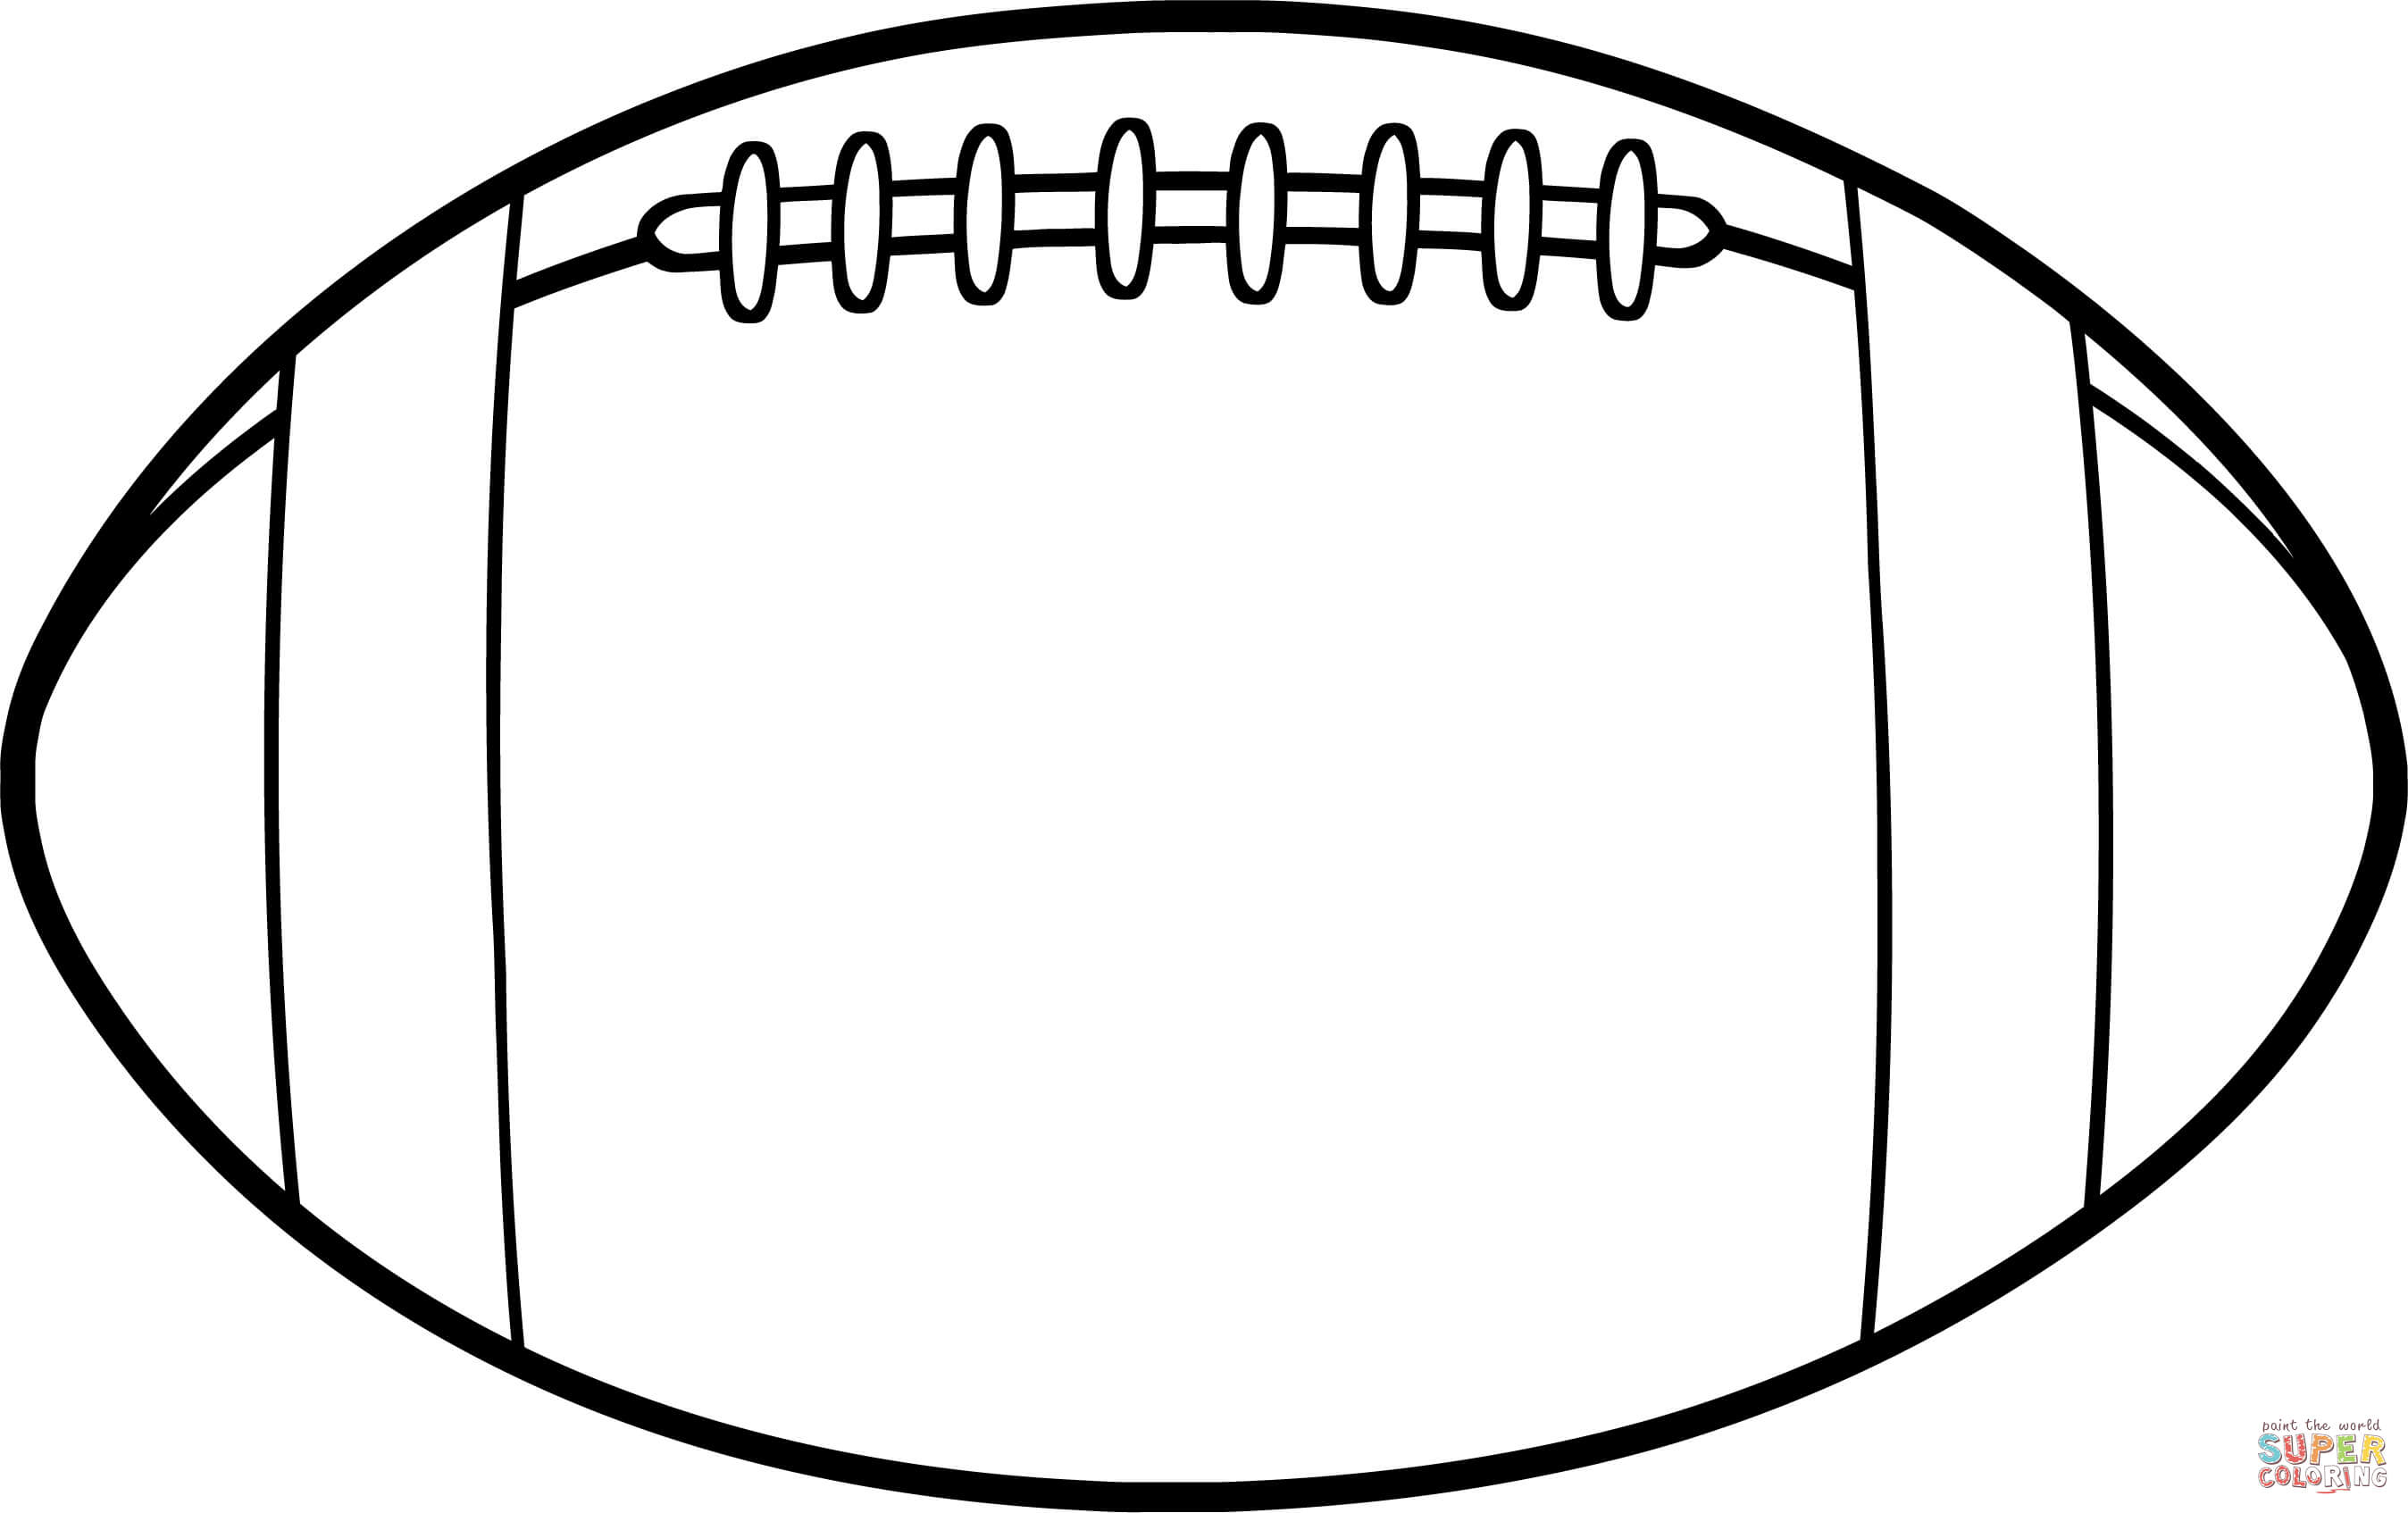 blank football field template - baseball diagram templates